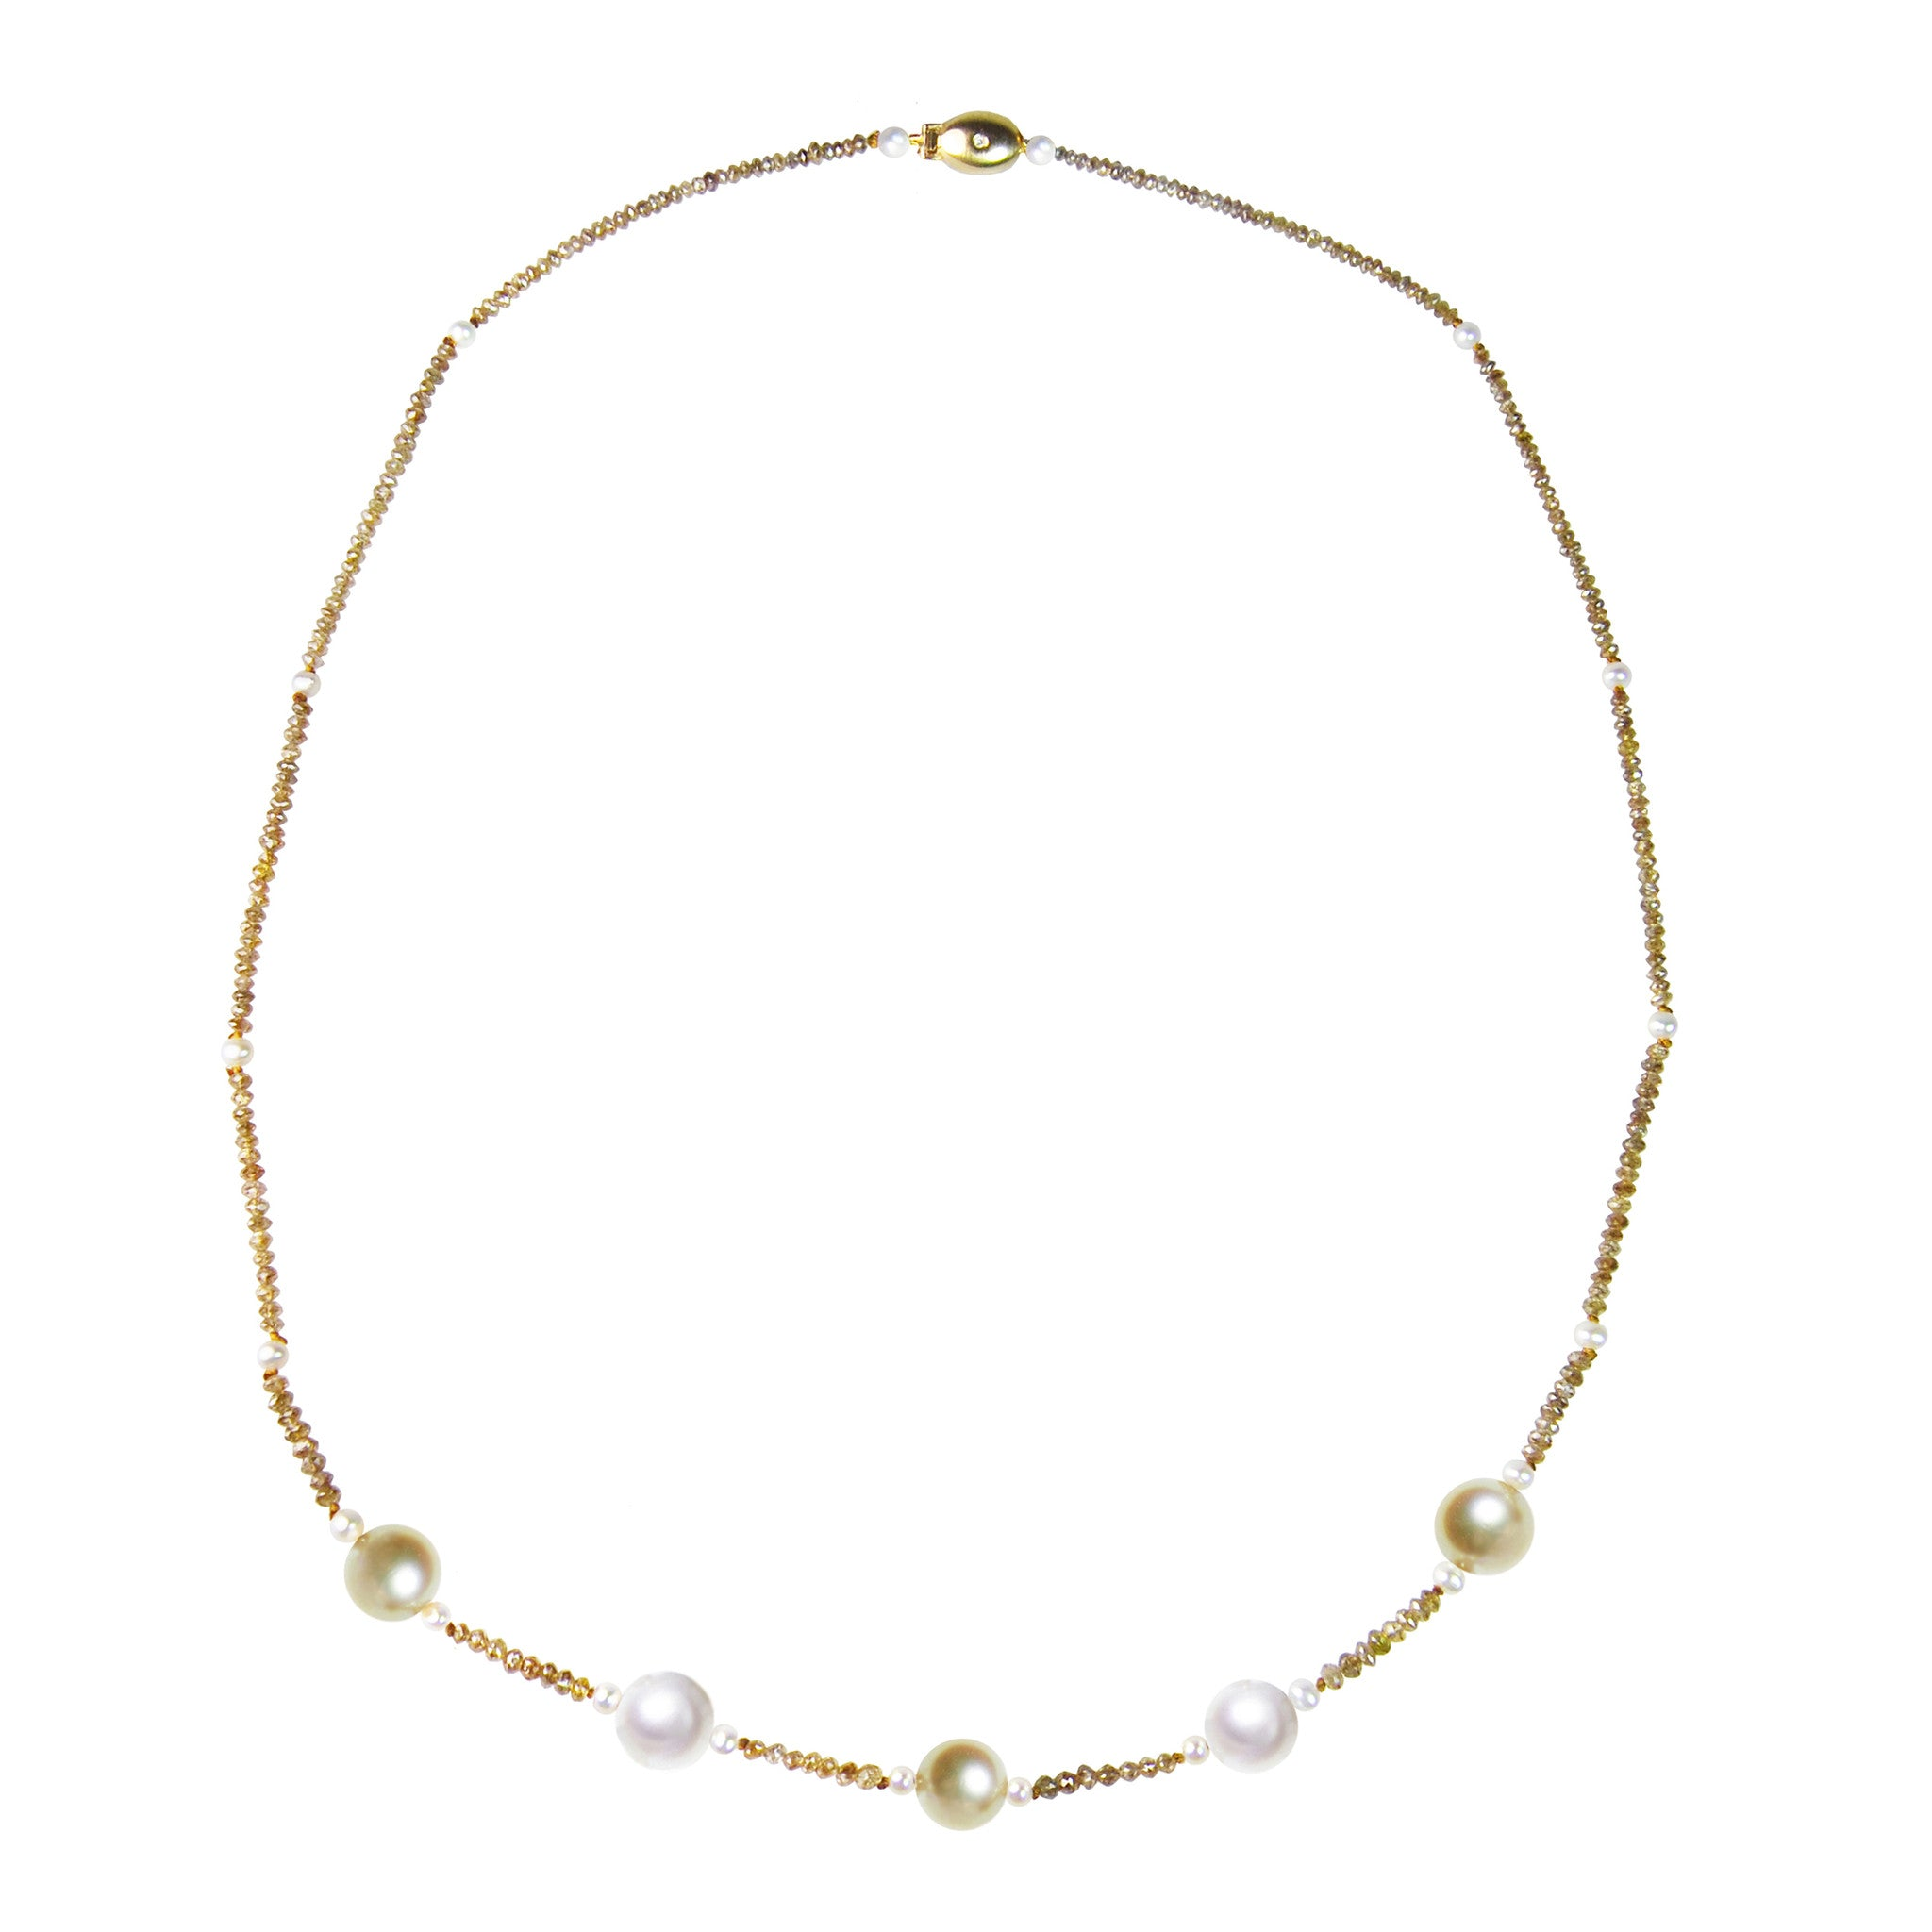 Cognac Diamond and South Sea Pearl Necklace